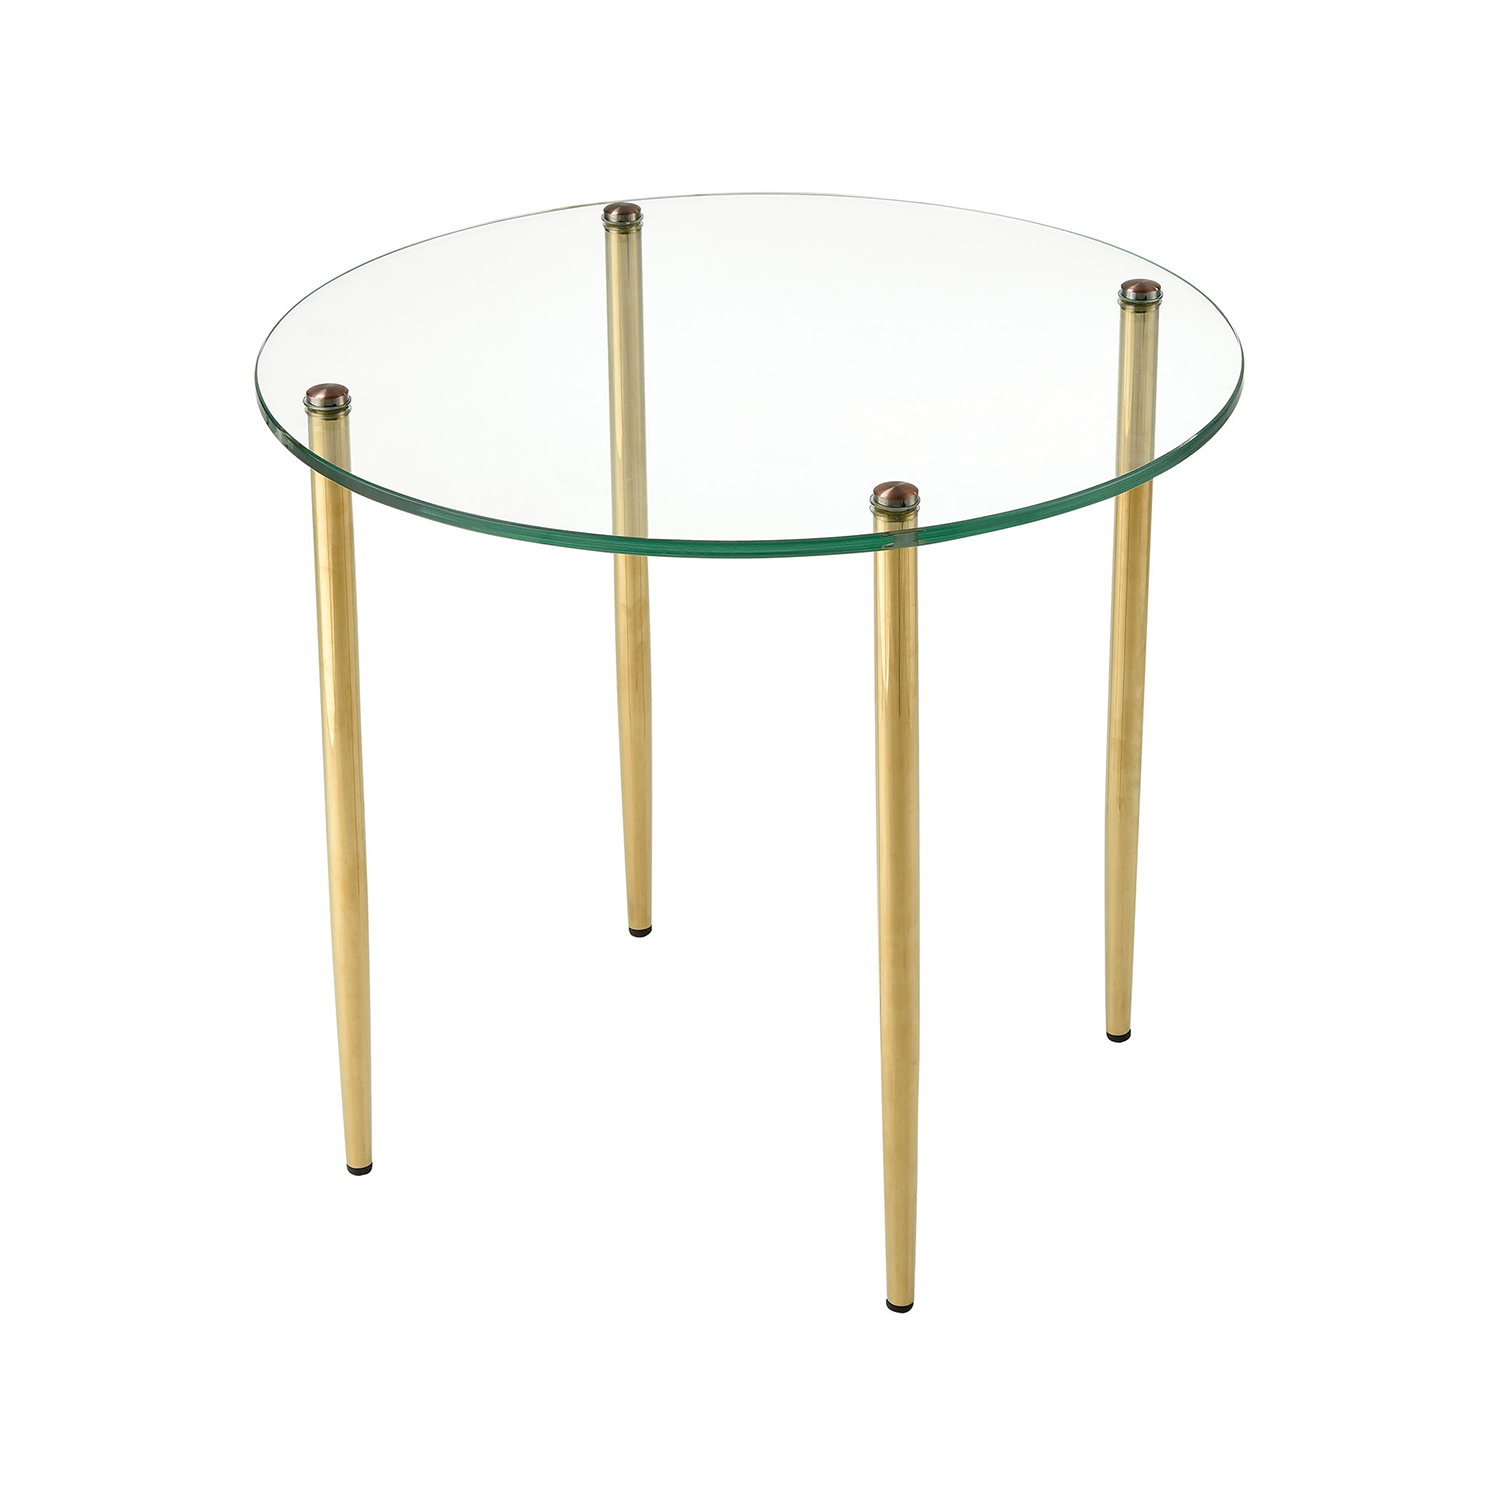 dimond home point round gold accent table bellacor stone end tables target wood side outside and chair covers verizon lte tablet cardboard metal bookshelf threshold coffee deck